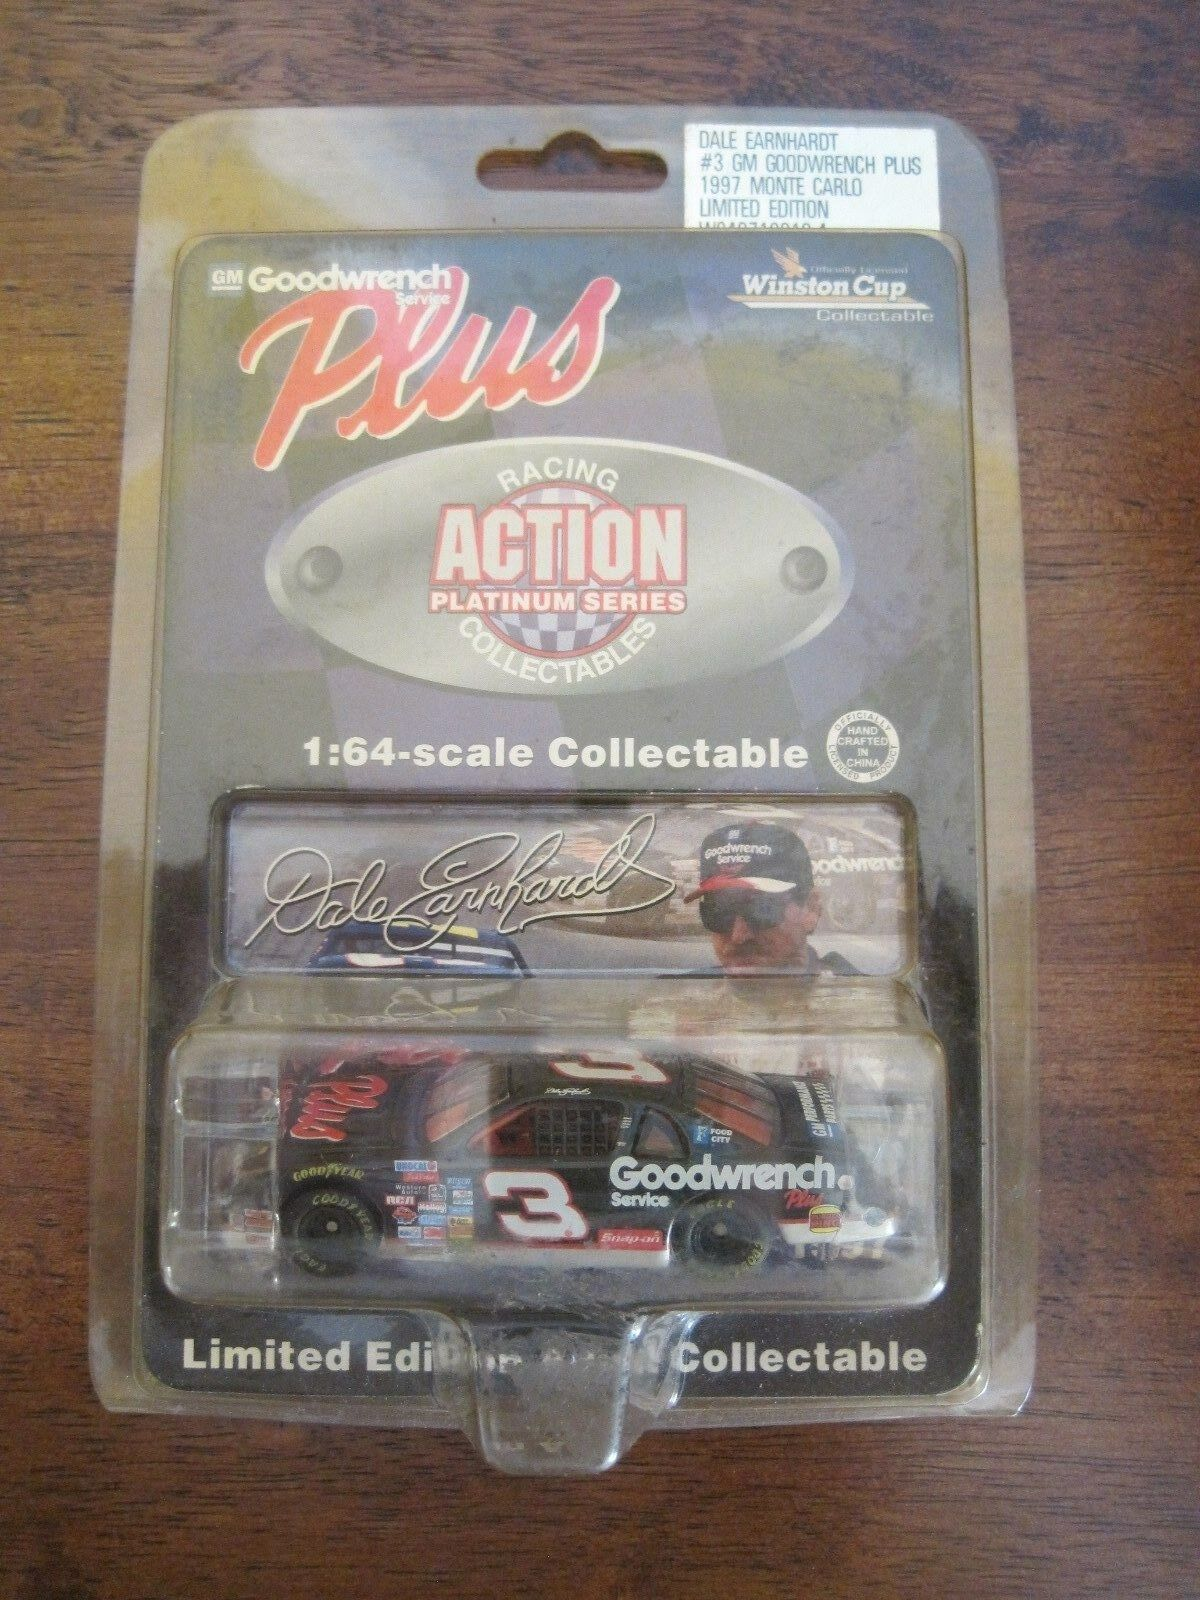 Nascar Winners Circle Dale Earnhardt GM Goodwrench Plus 1 64 1997 Monte Carlo